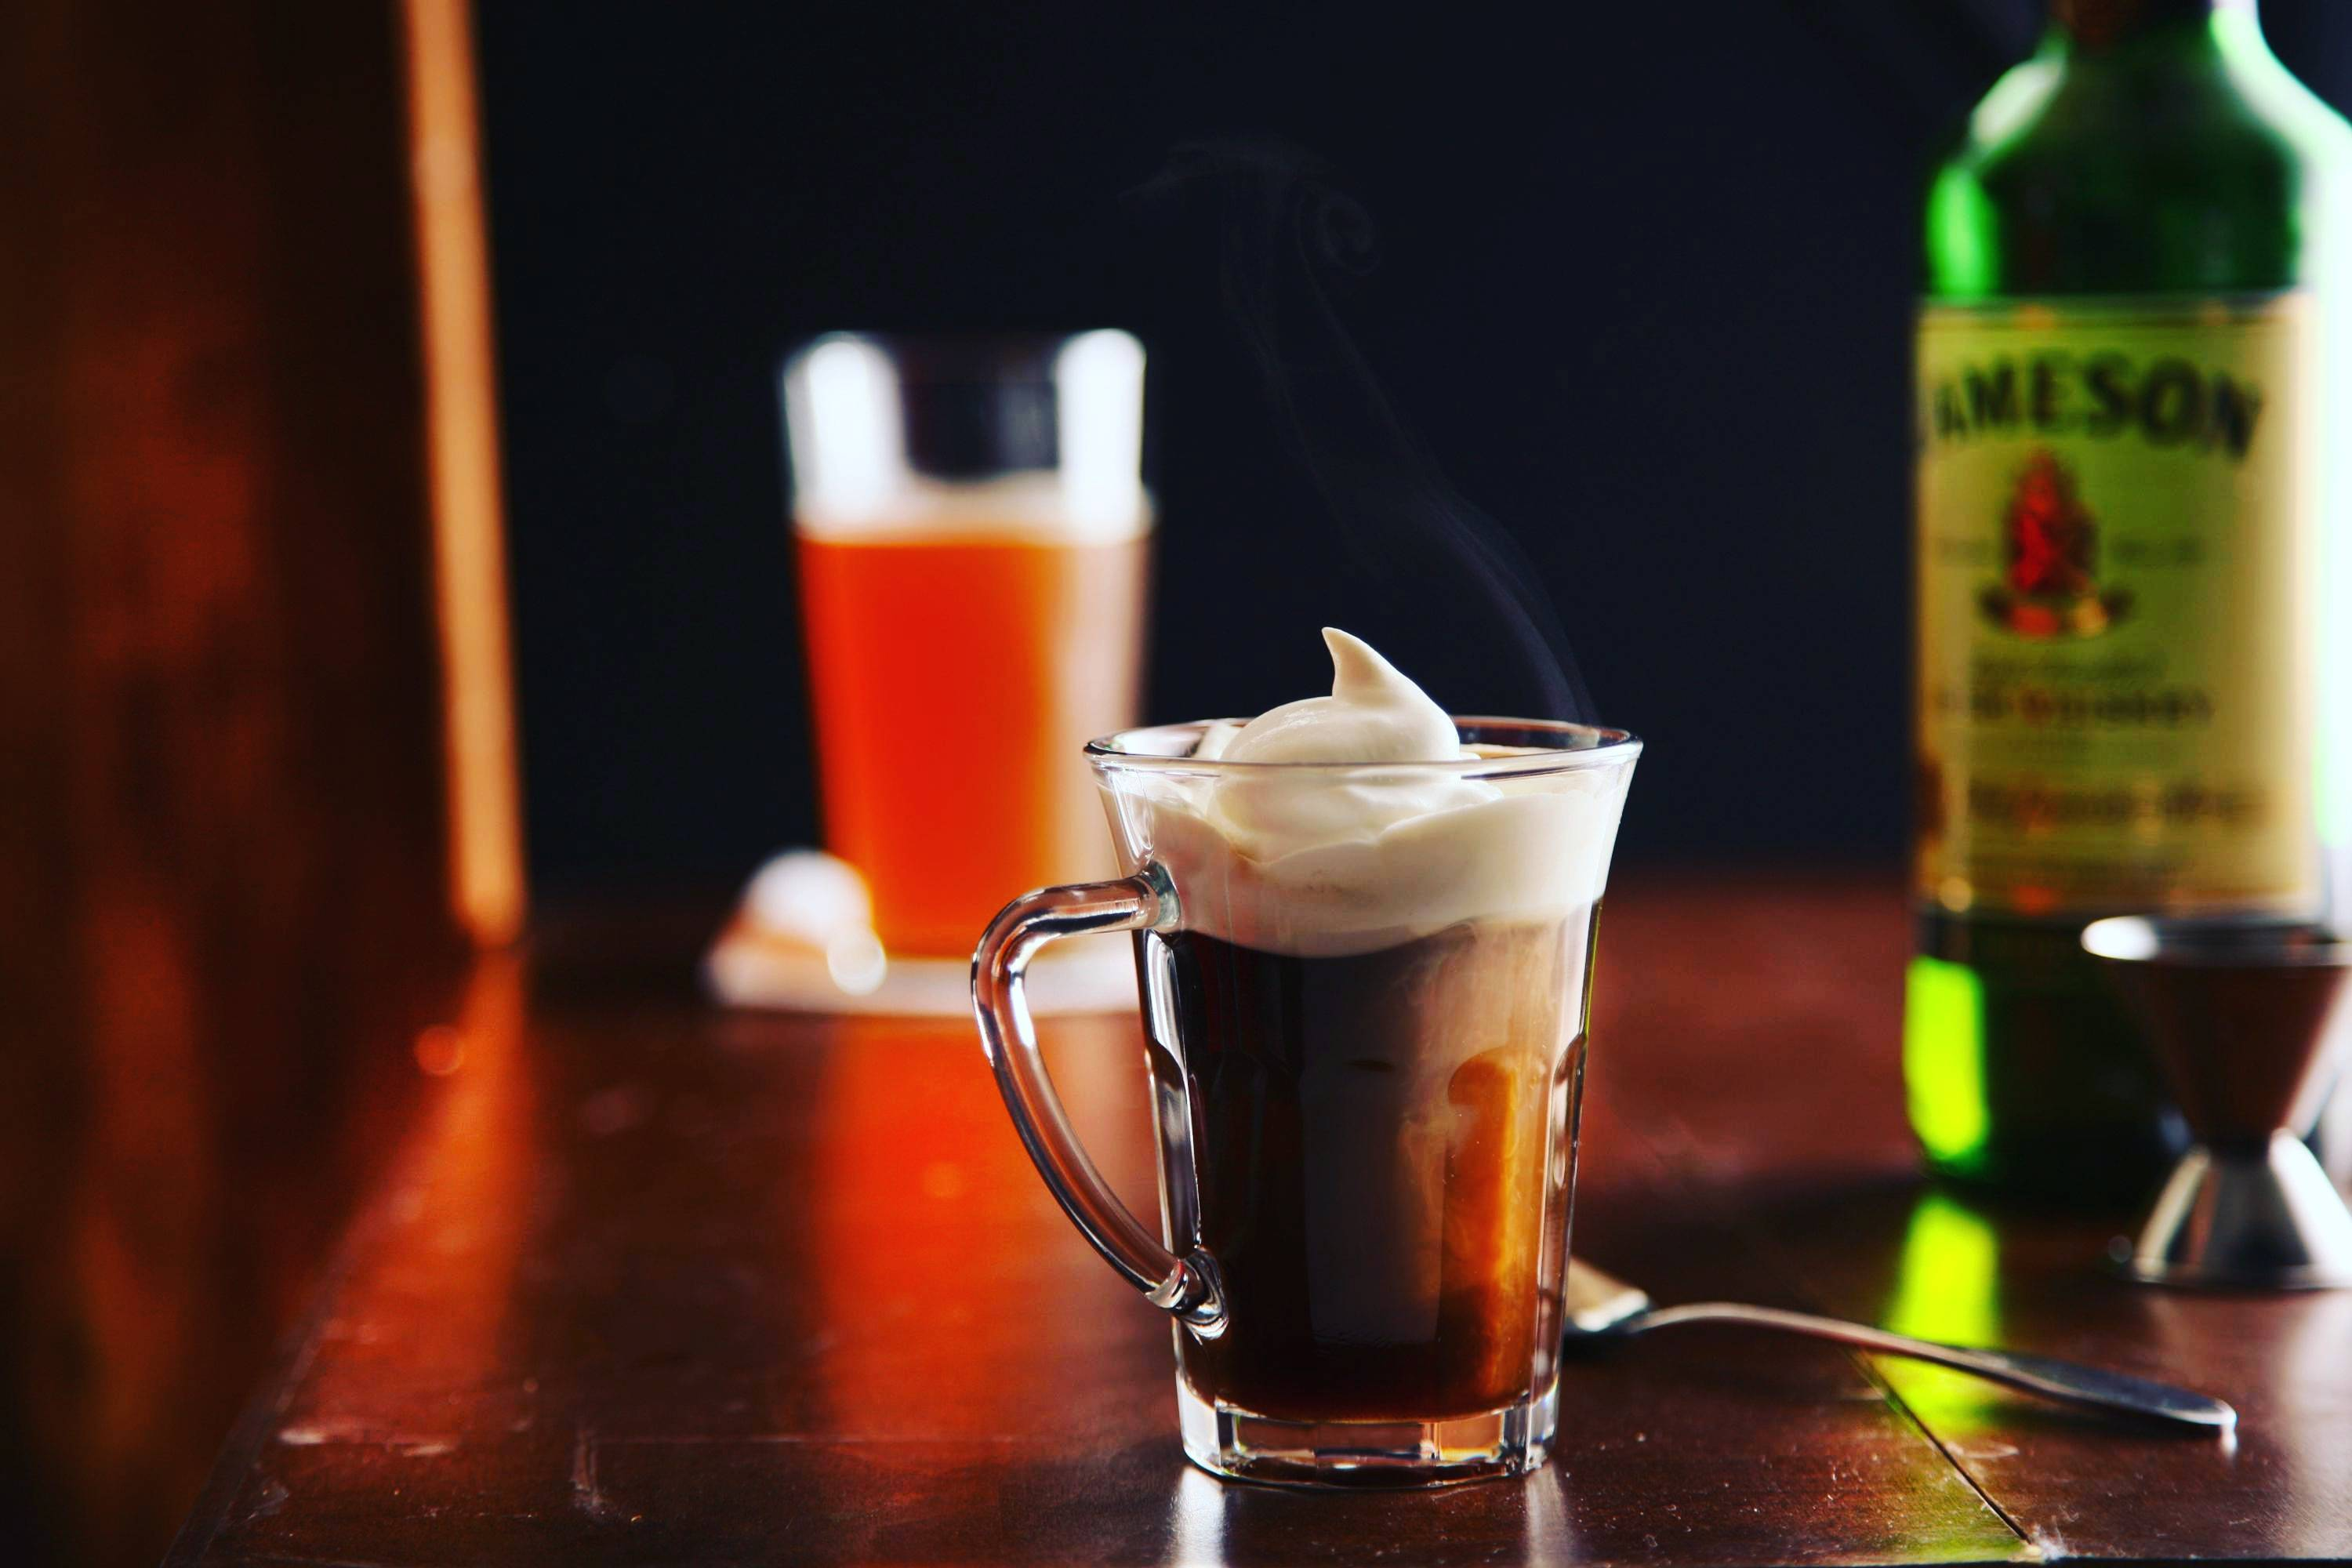 Рецепт коктейля ирландский кофе (irish coffee)